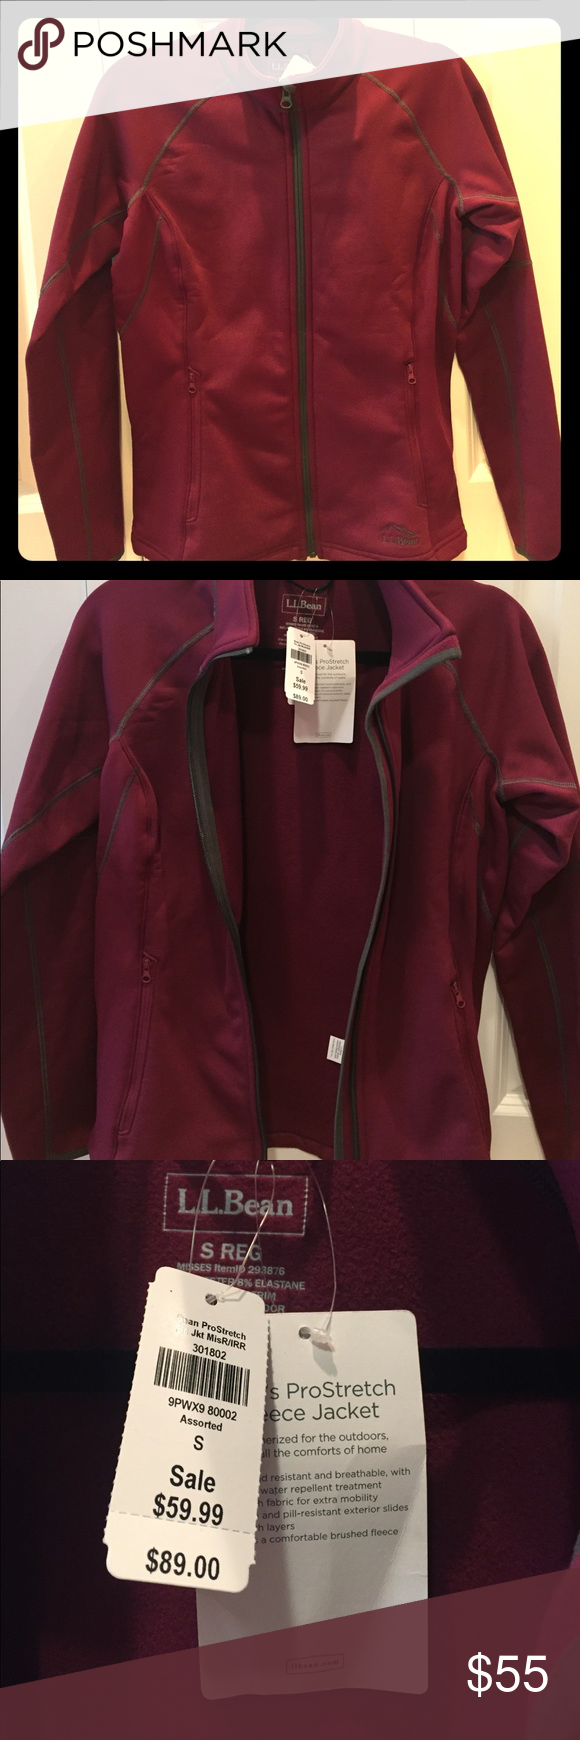 Llbean prostretch fleece jacket new burgundy color coats and